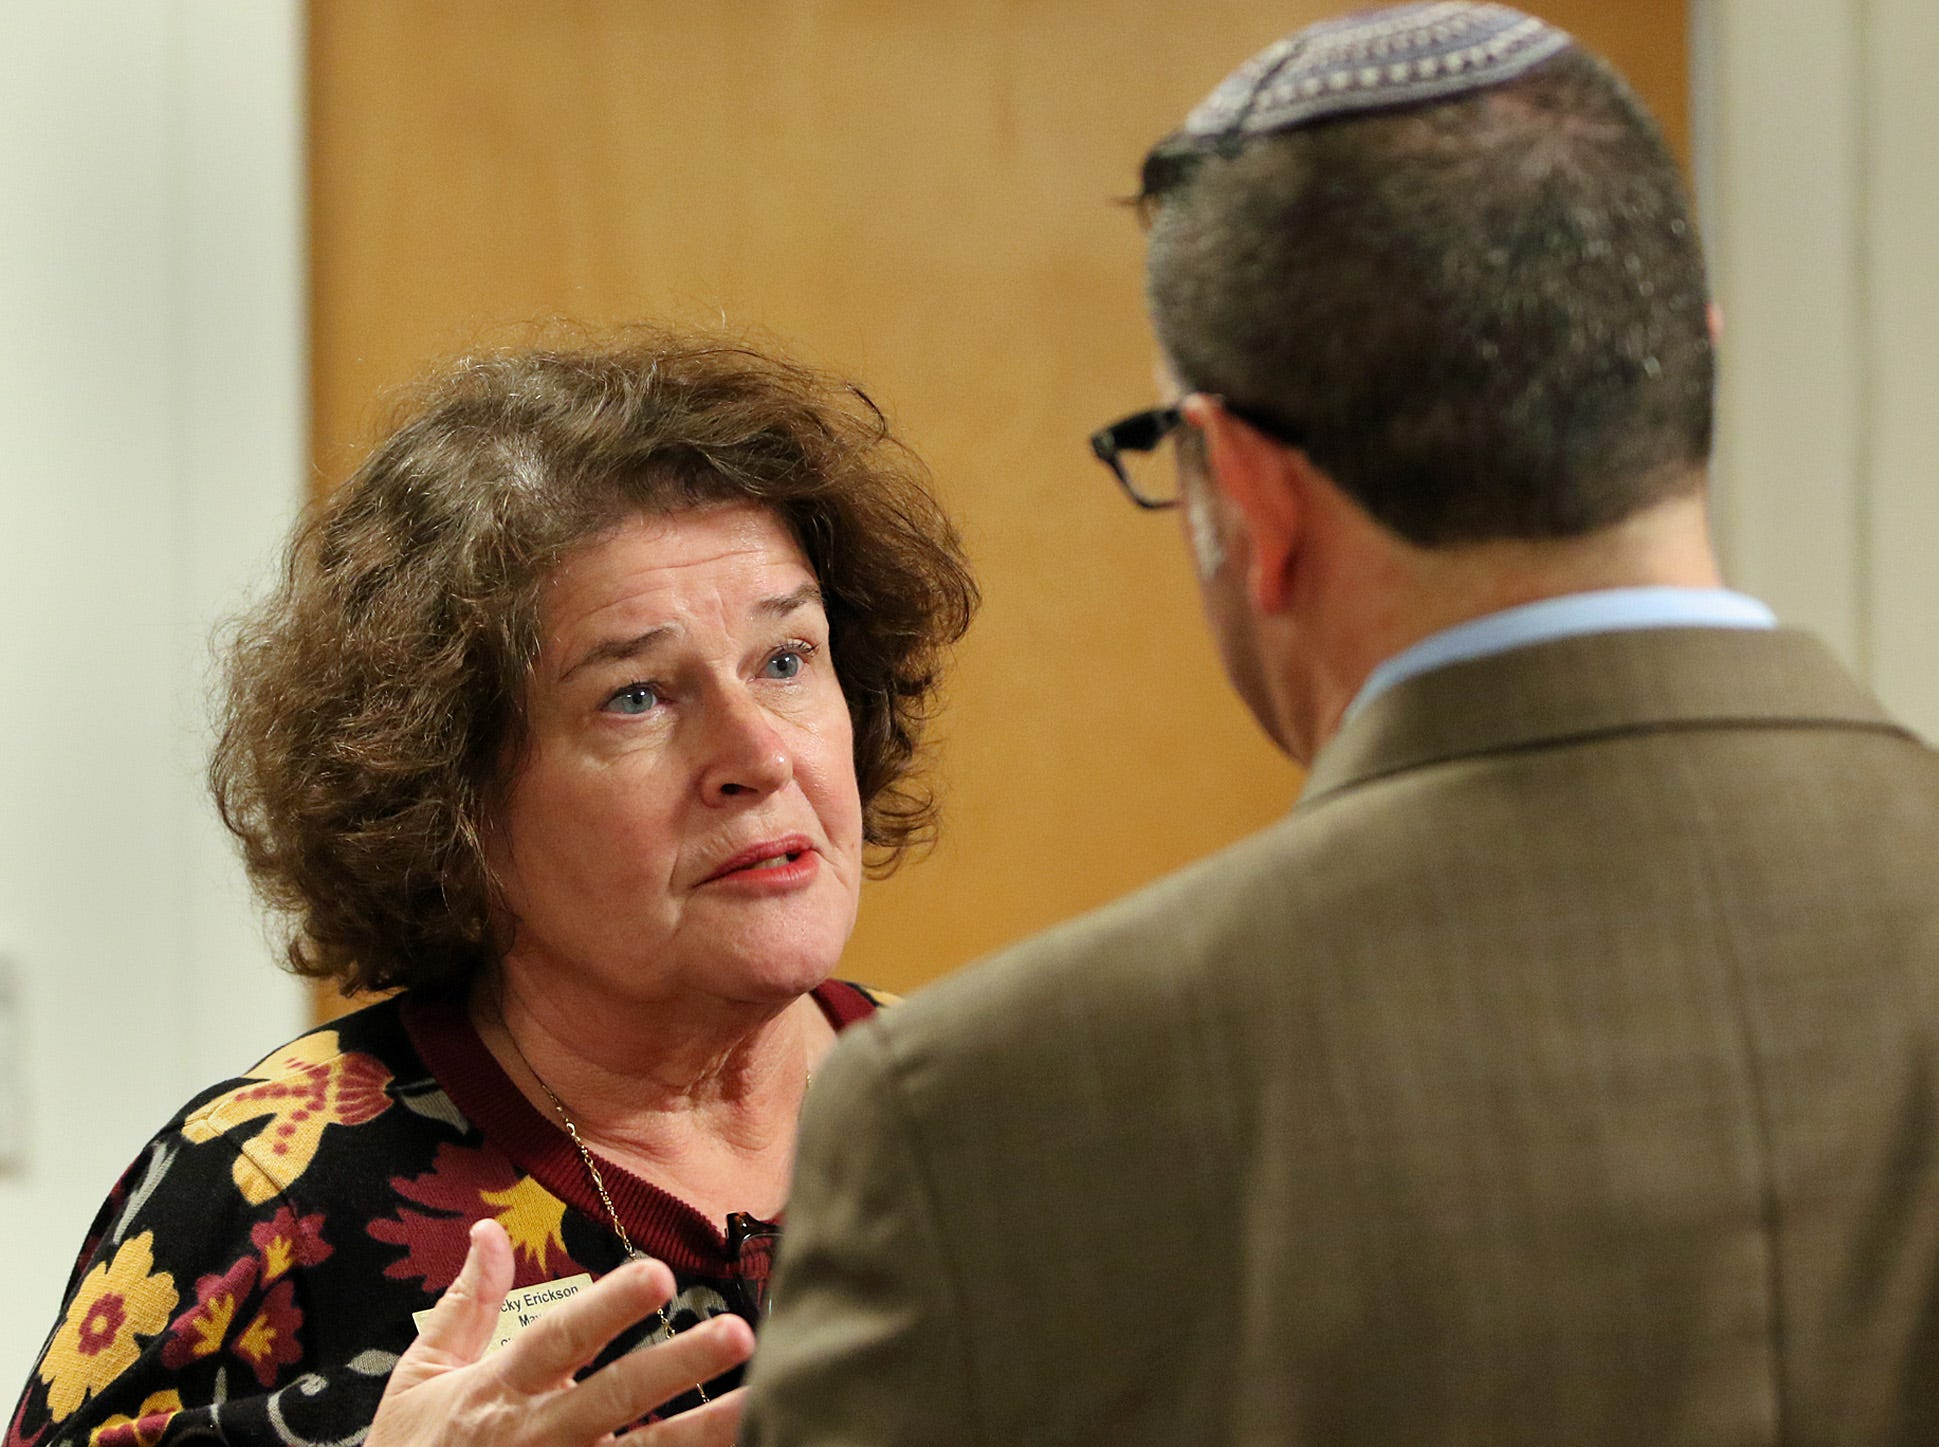 Poulsbo Mayor Becky Erickson shares her thoughts with Rabbi Mitch Delcau before the memorial serivice fot the shootings in Pittsburg.  The Beth Hatikvah (House of Hope) Synagogue in Bremerton held a memorial service for the Tree of Life Synagogue shootings Tuesday night in Bremerton.